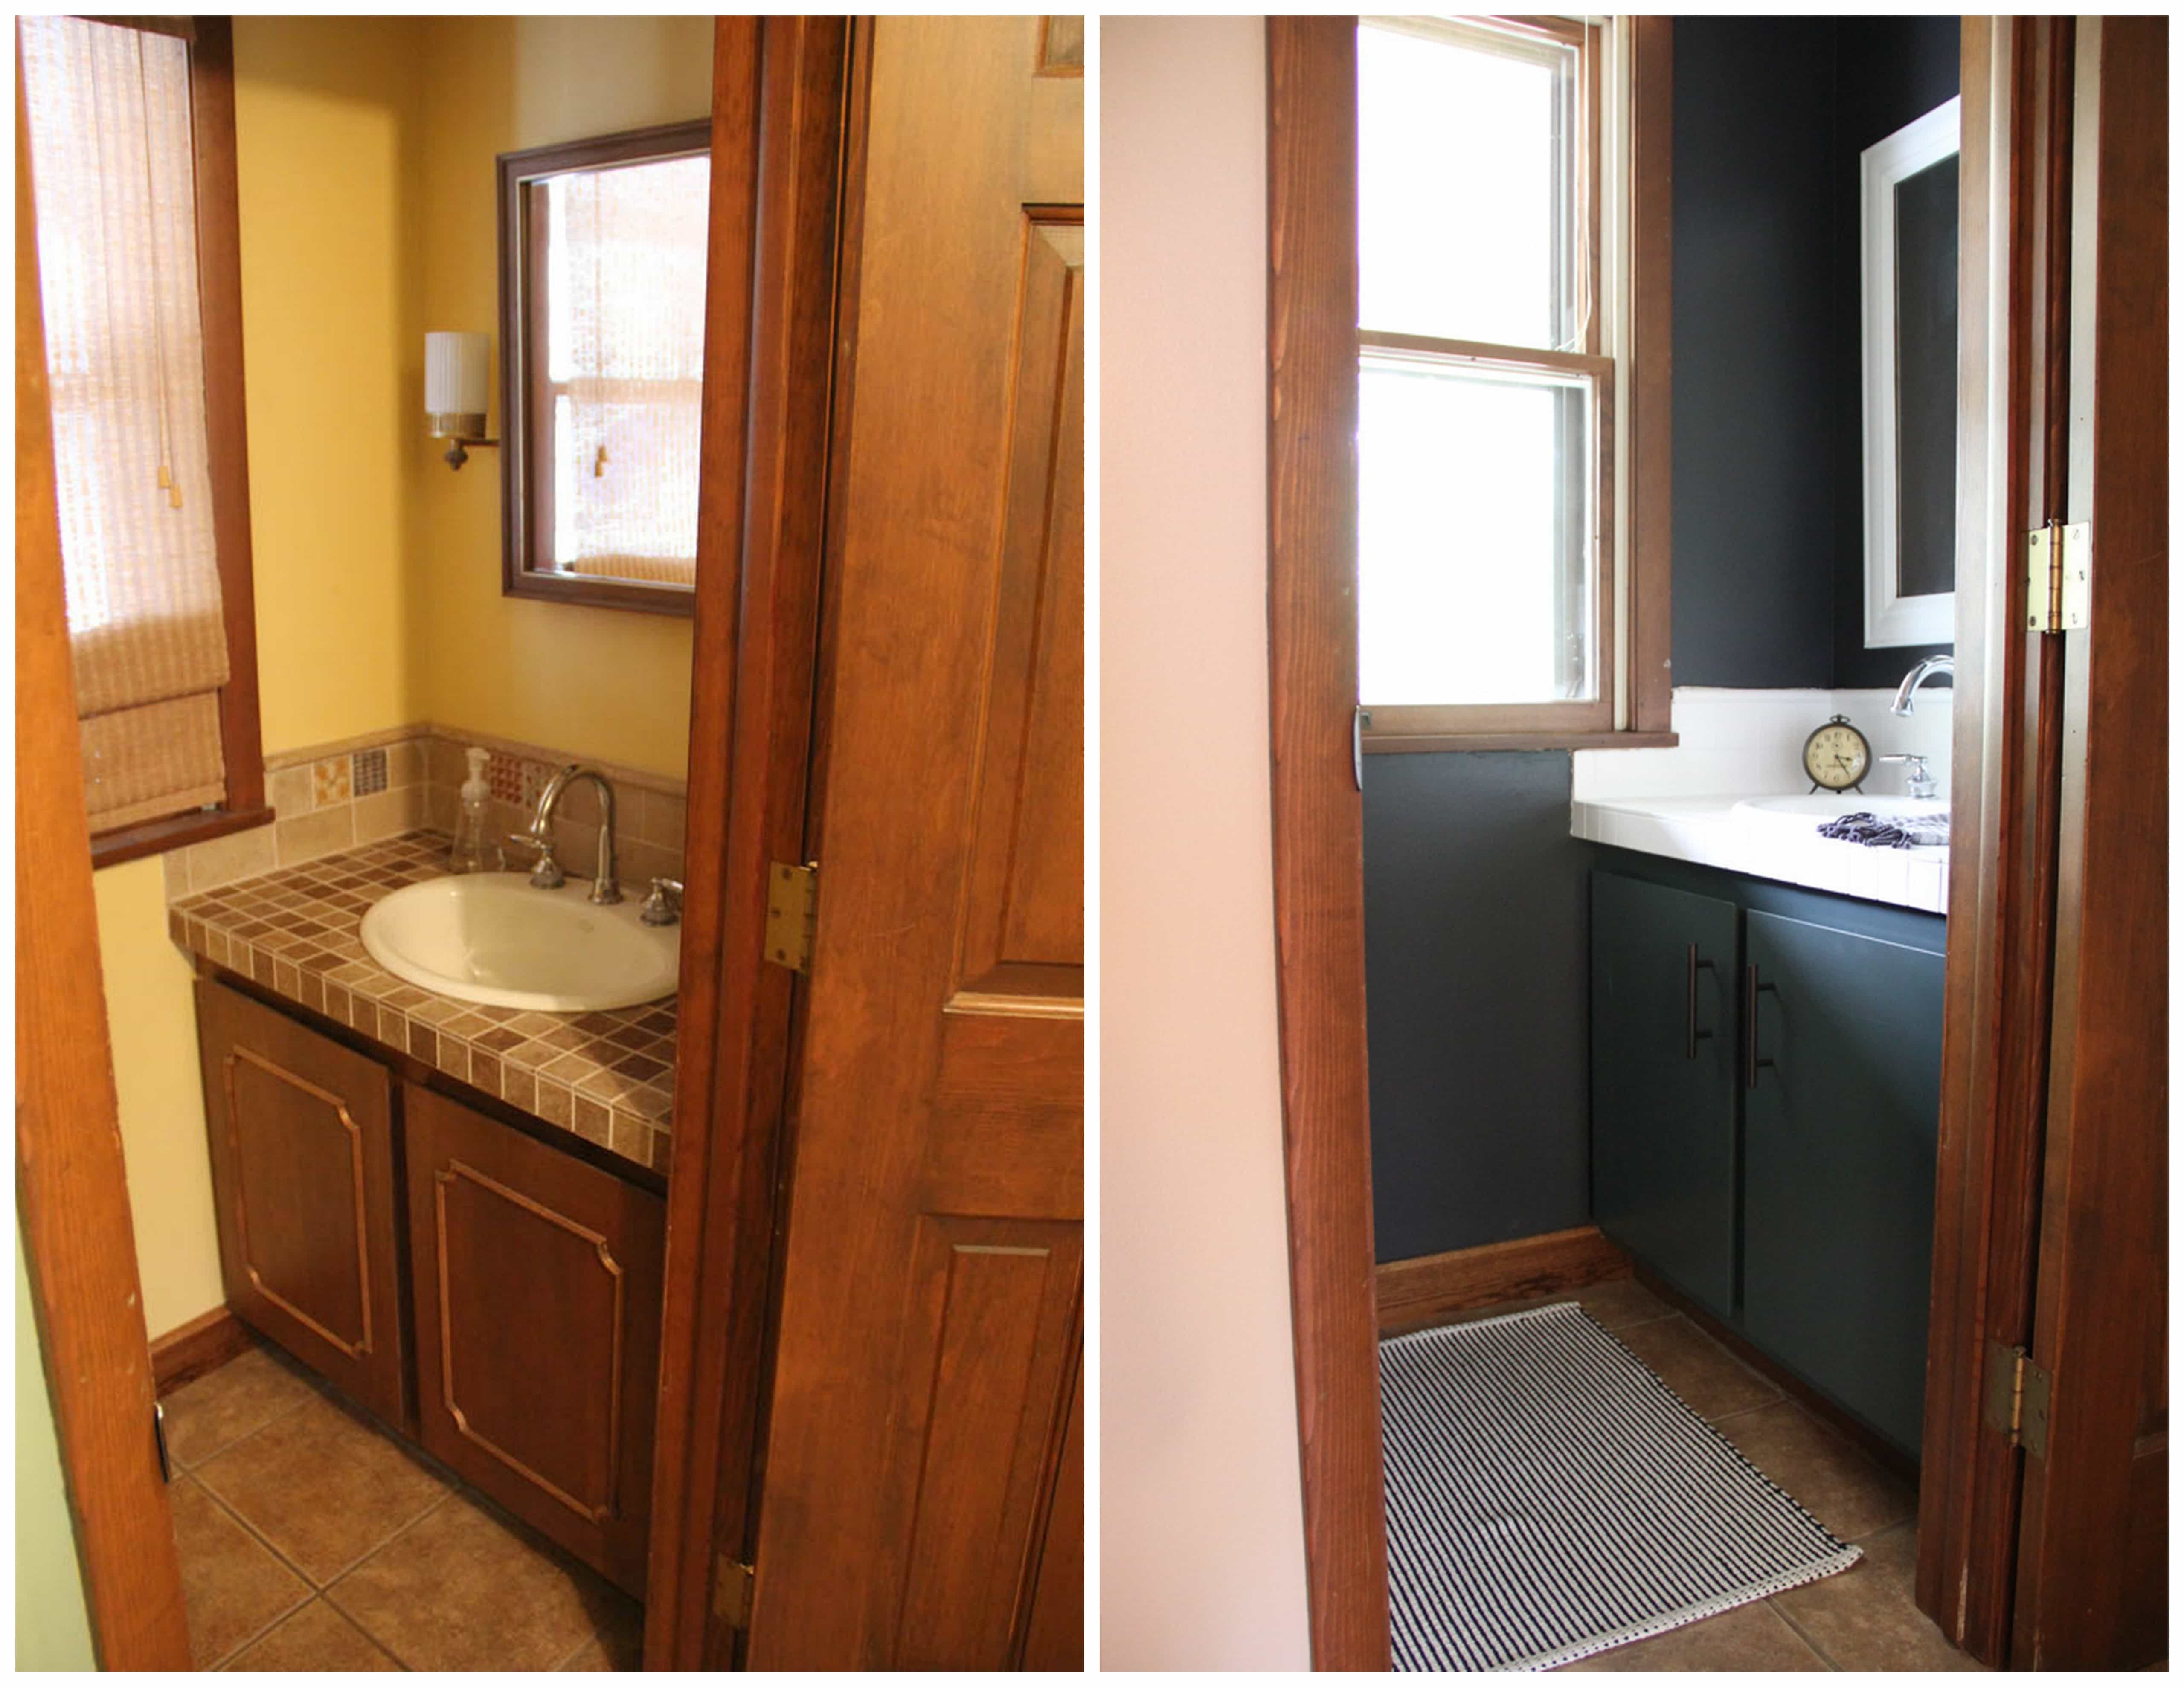 Powder Bathroom Before and After